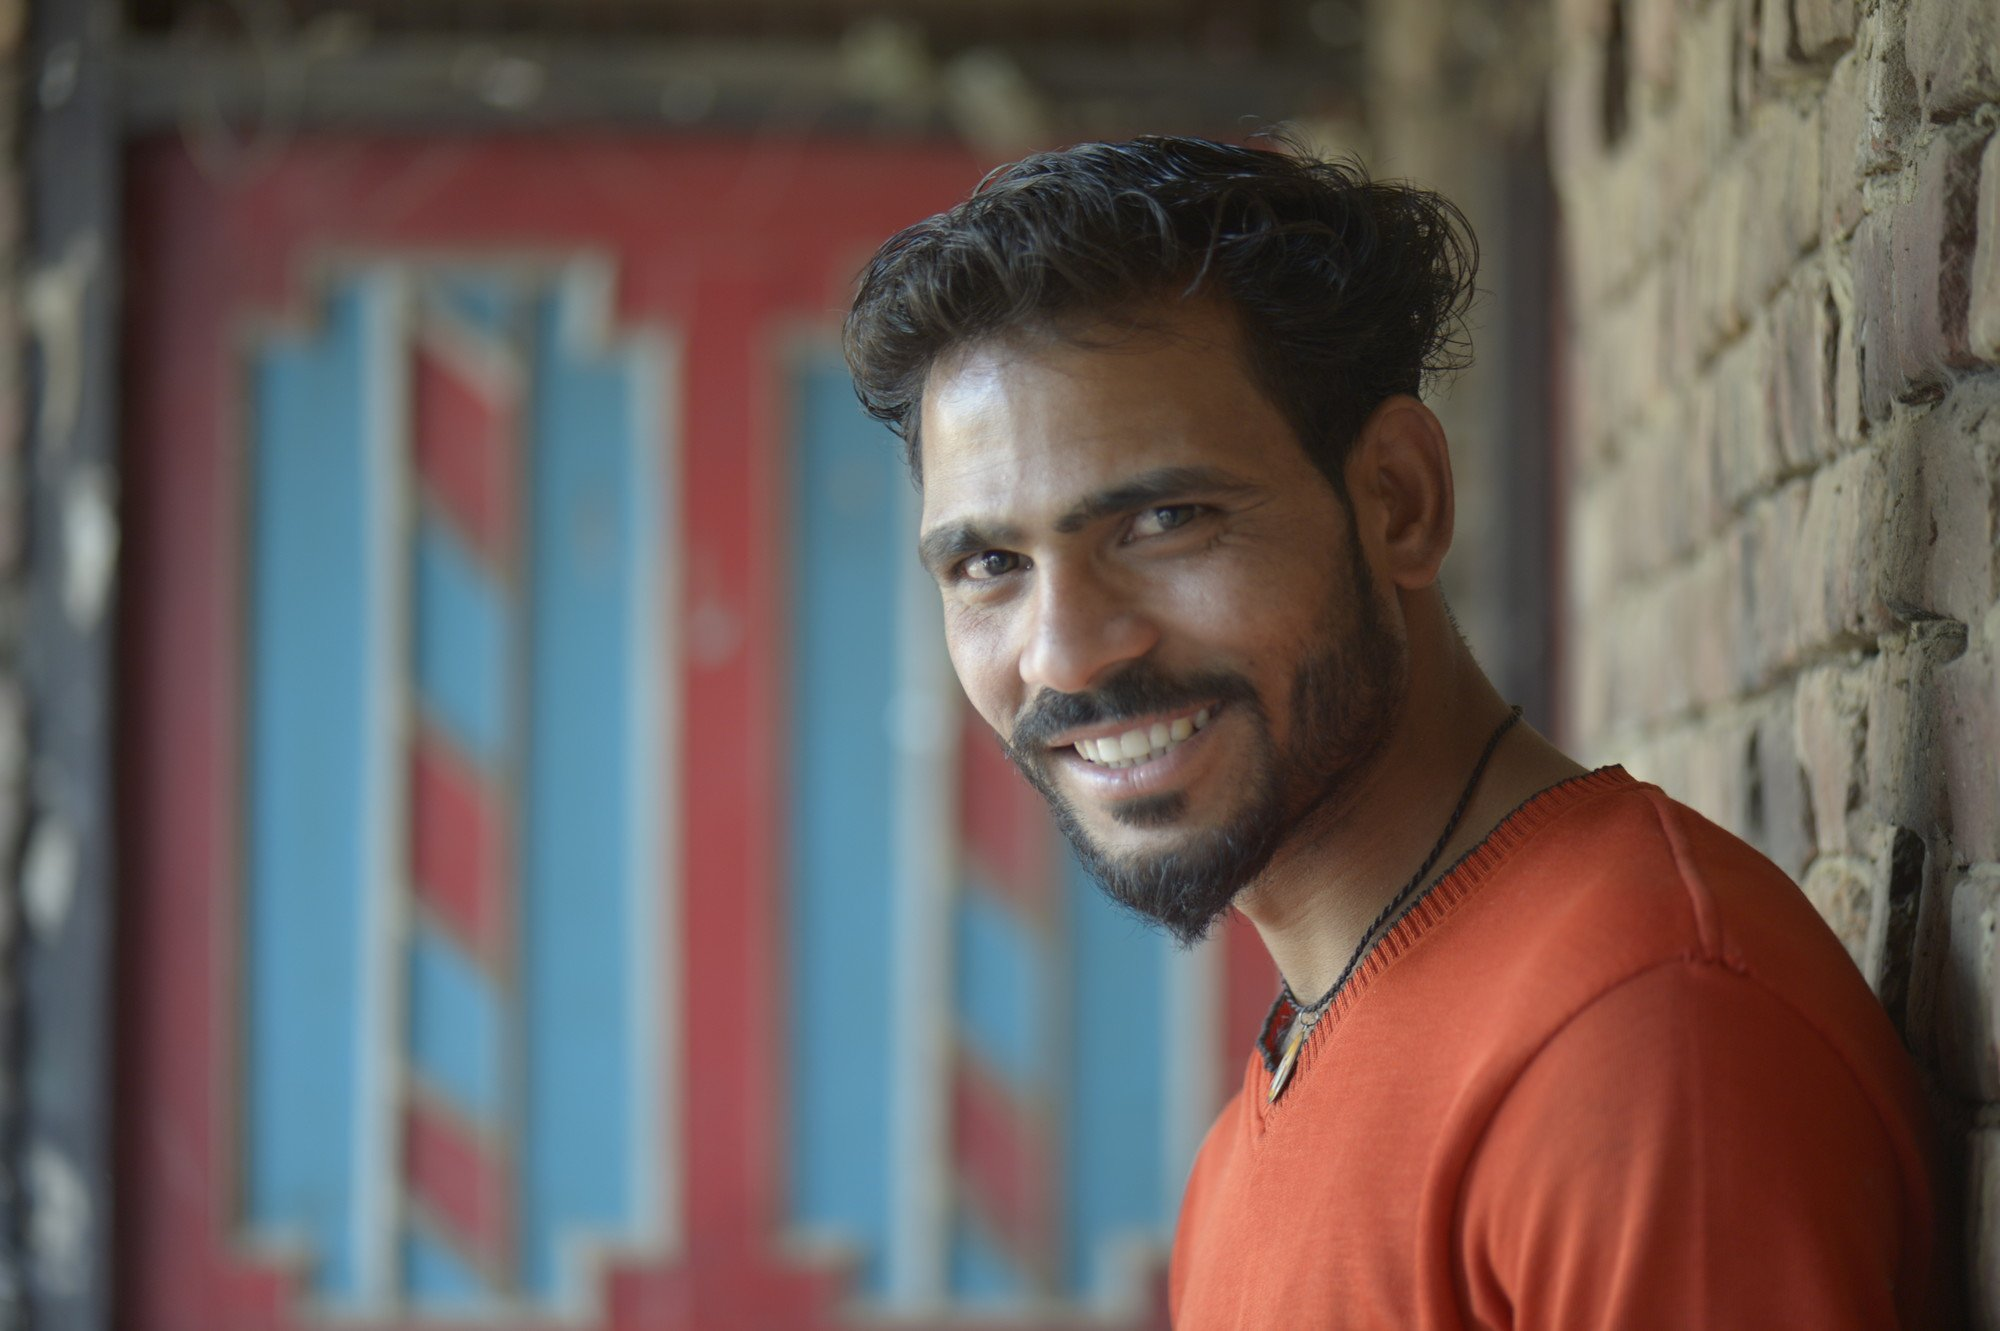 Amit Kumar, 22, learned about the importance of girls' education through an Oxfam program called Creating Spaces, which aims to transform gender norms.